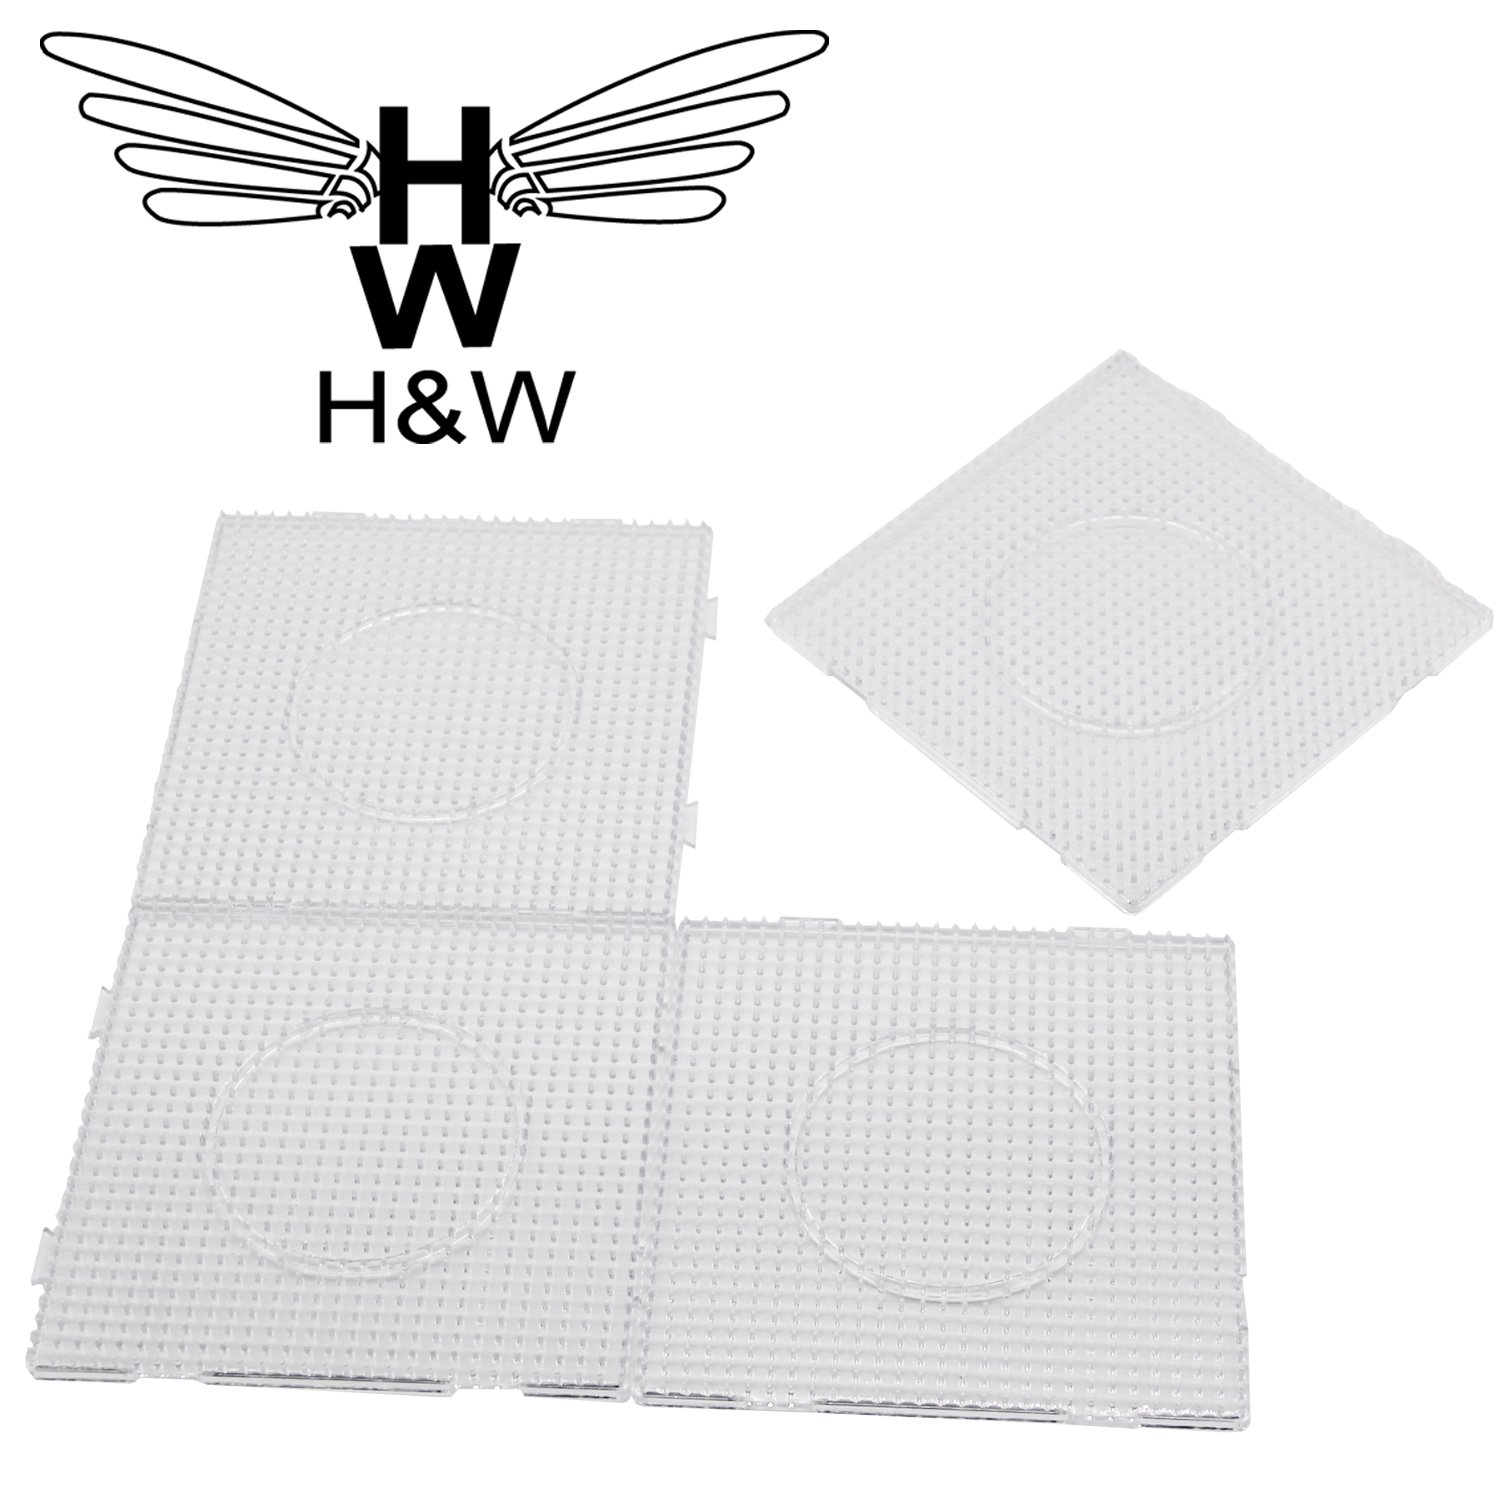 H/&W 4PCS 5mm Fuse Beads Boards WA3-Z1 with Gift 4 Lroning Paper Large Clear Pegboards Kits